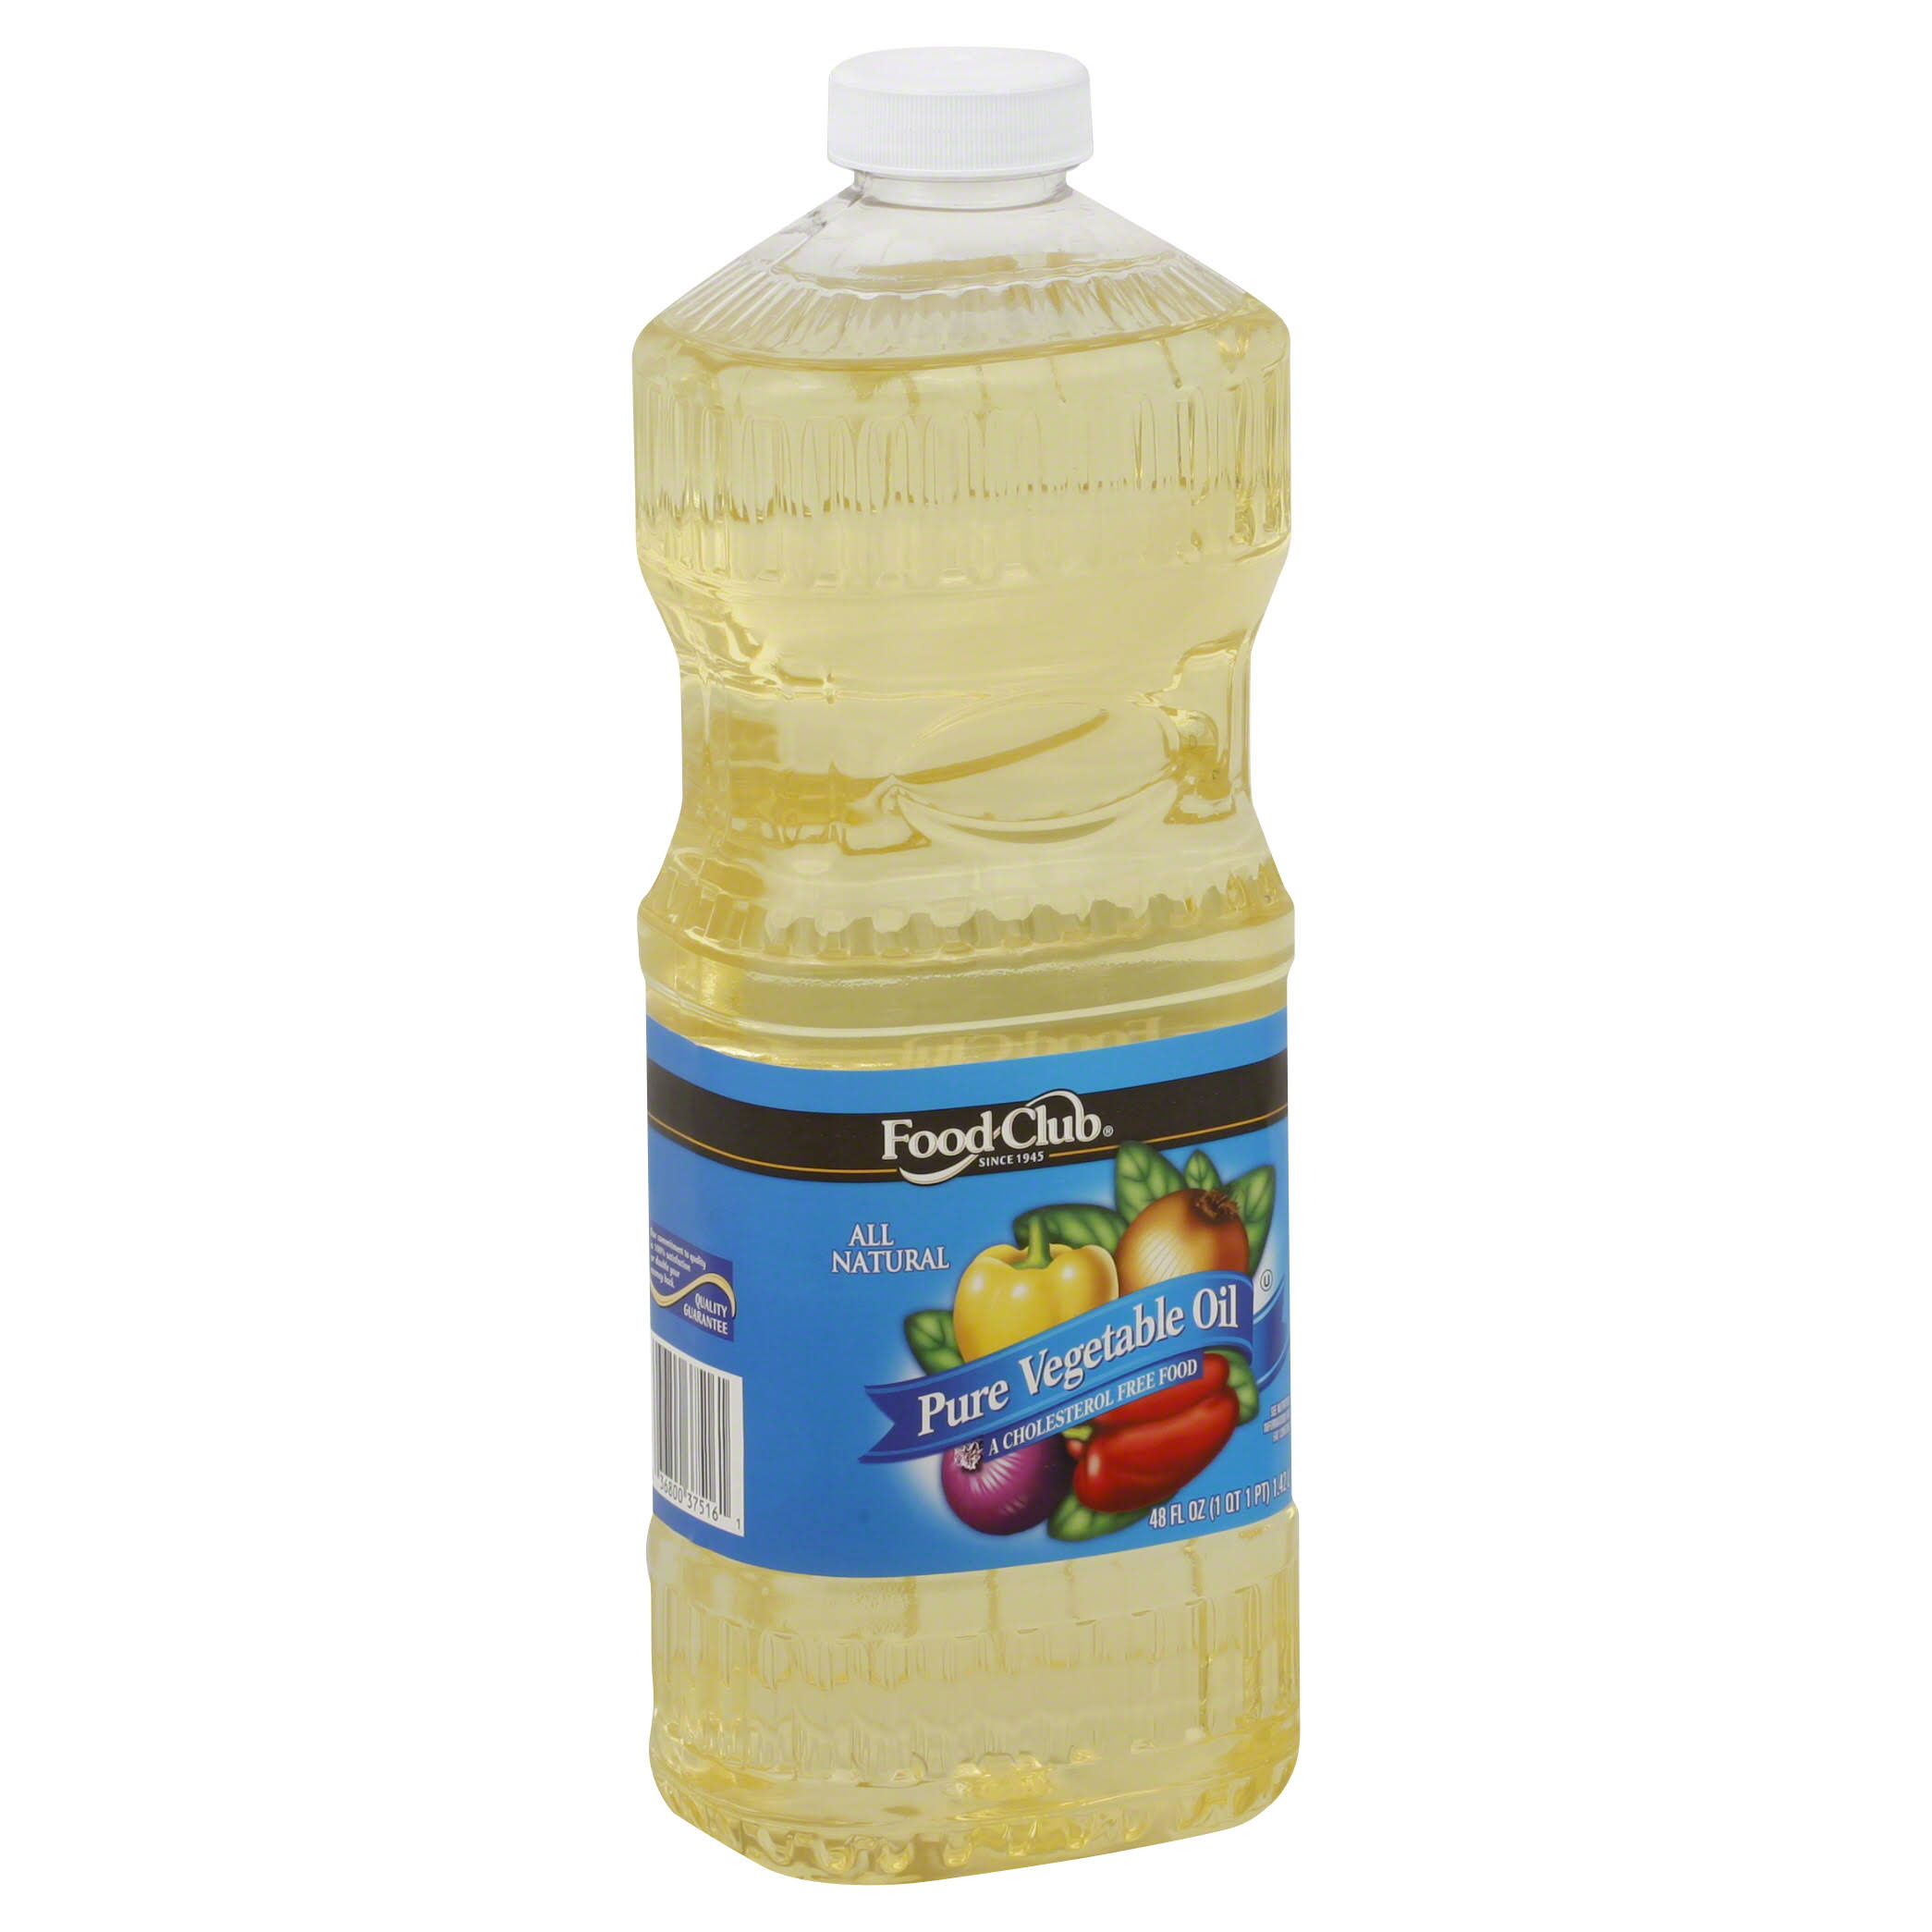 Food Club Vegetable Oil - 48oz